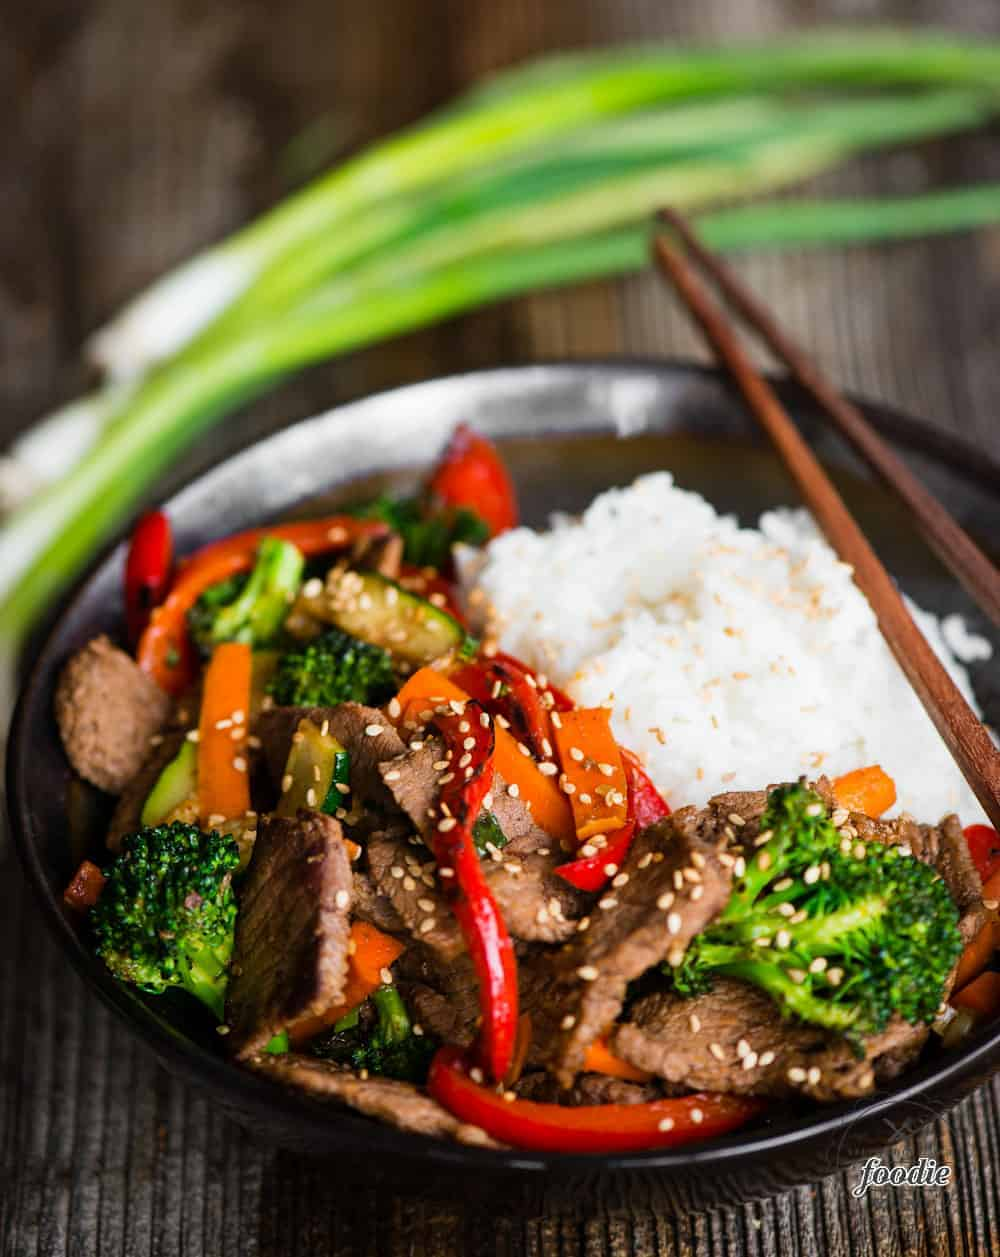 The Best Beef Stir Fry Recipe And Video Self Proclaimed Foodie